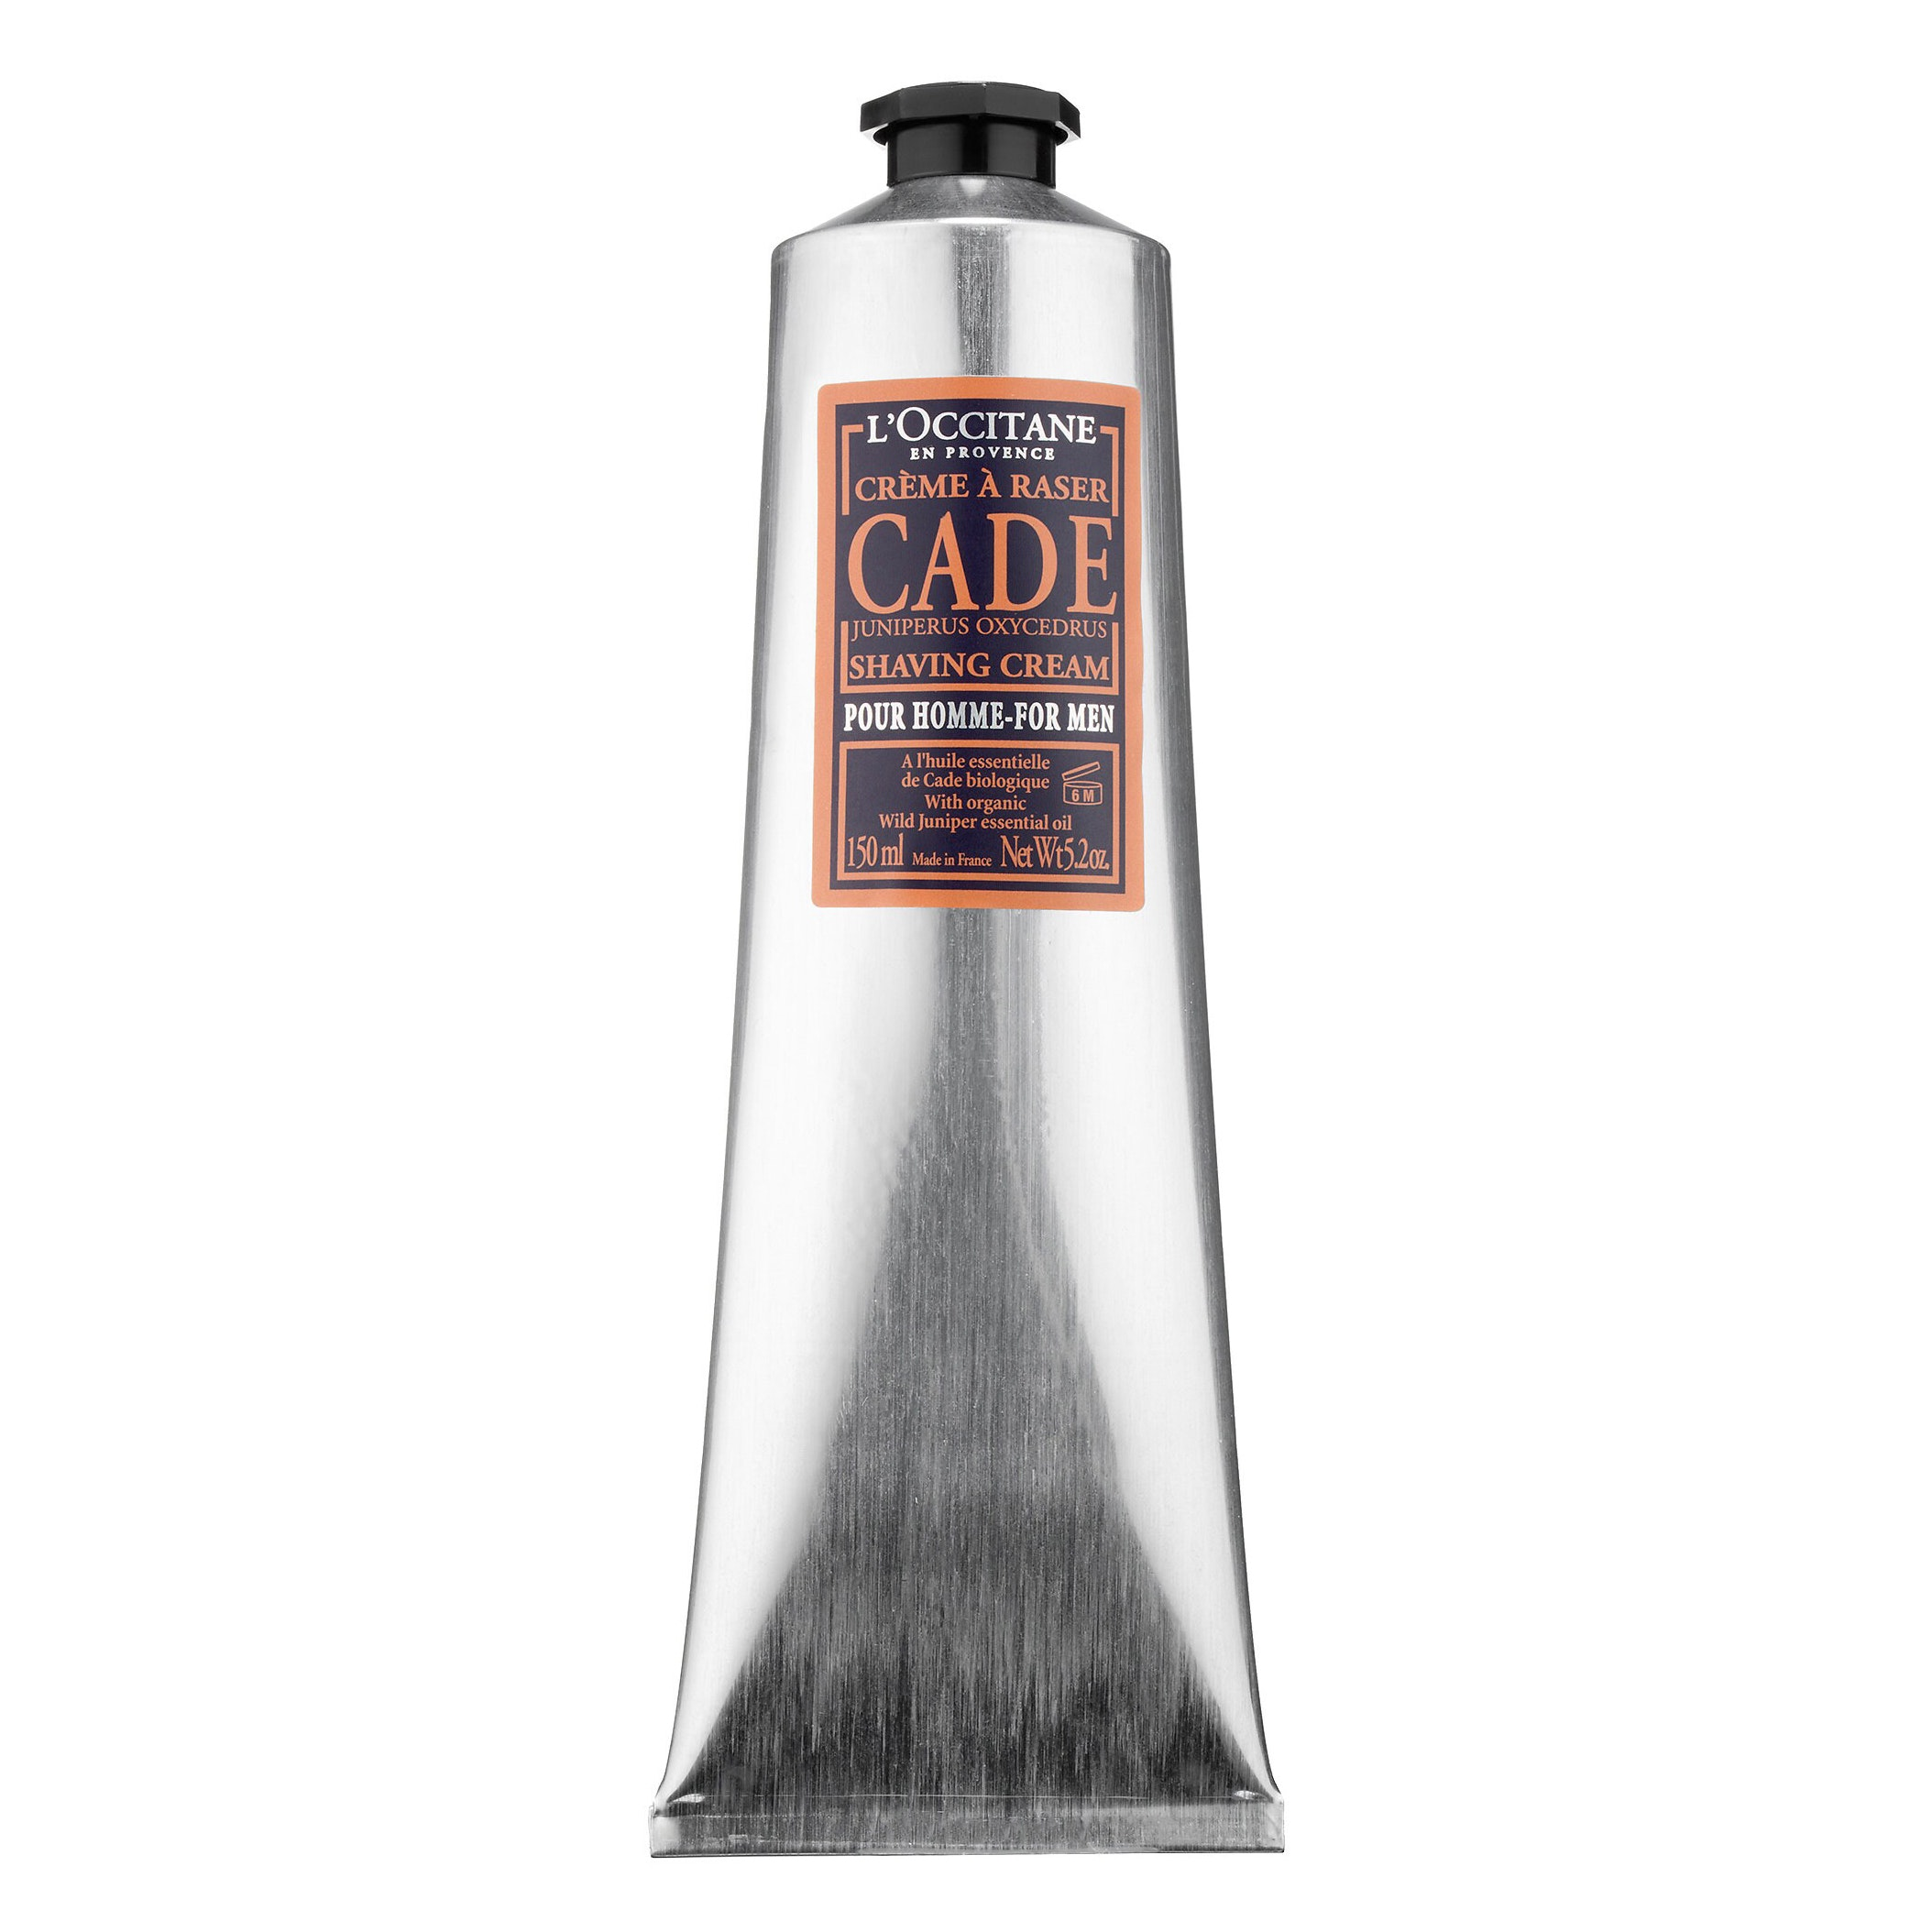 L'Occitane® Cade™ Shaving Cream